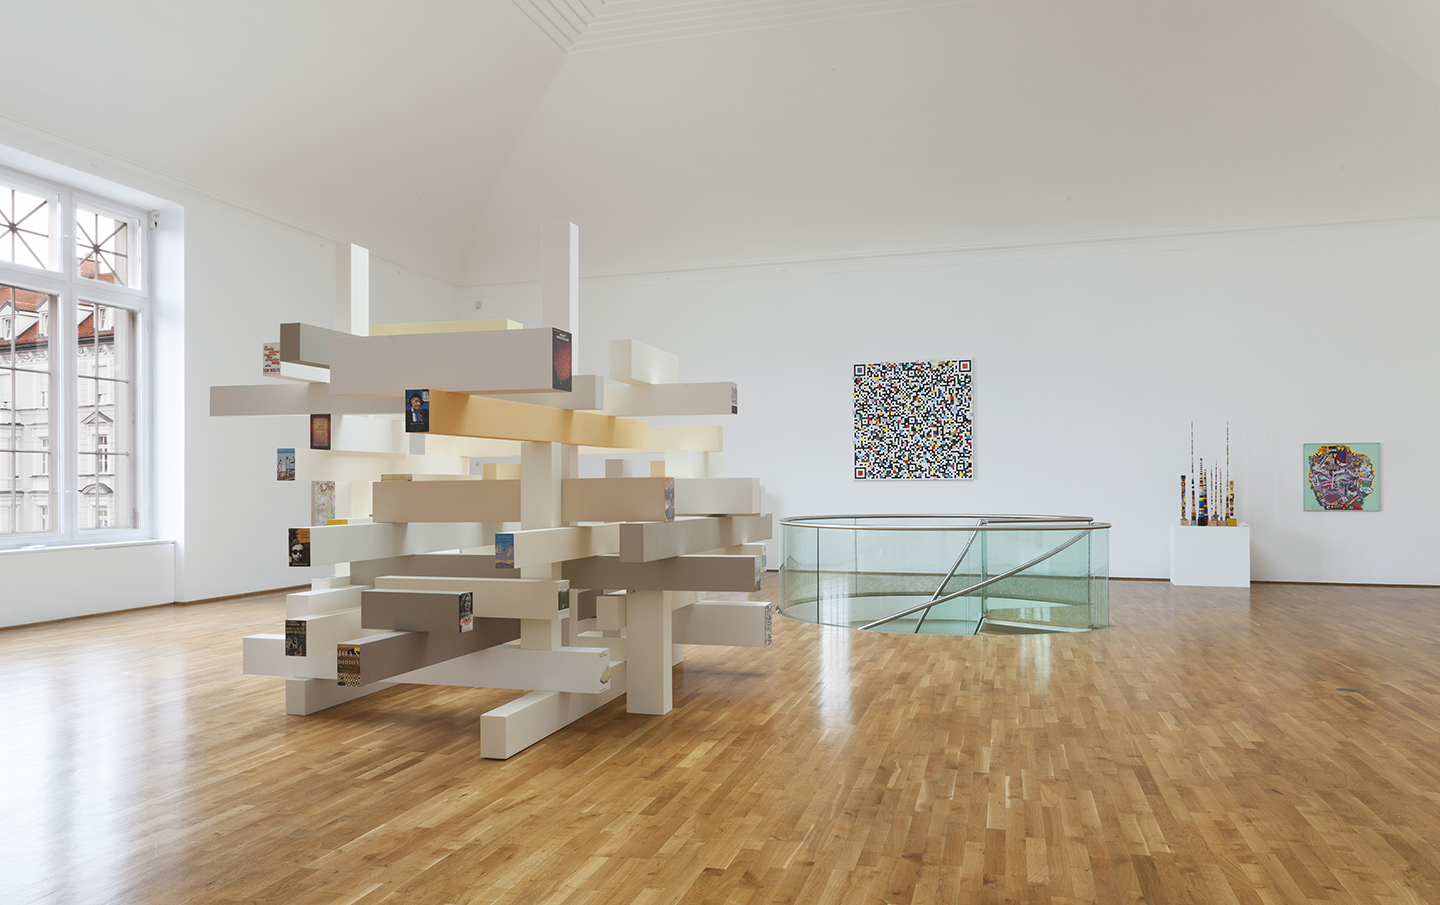 Douglas Coupland Bit Rot At Museum Villa Stuck Munich Mousse  # Muebles Kevin Charles